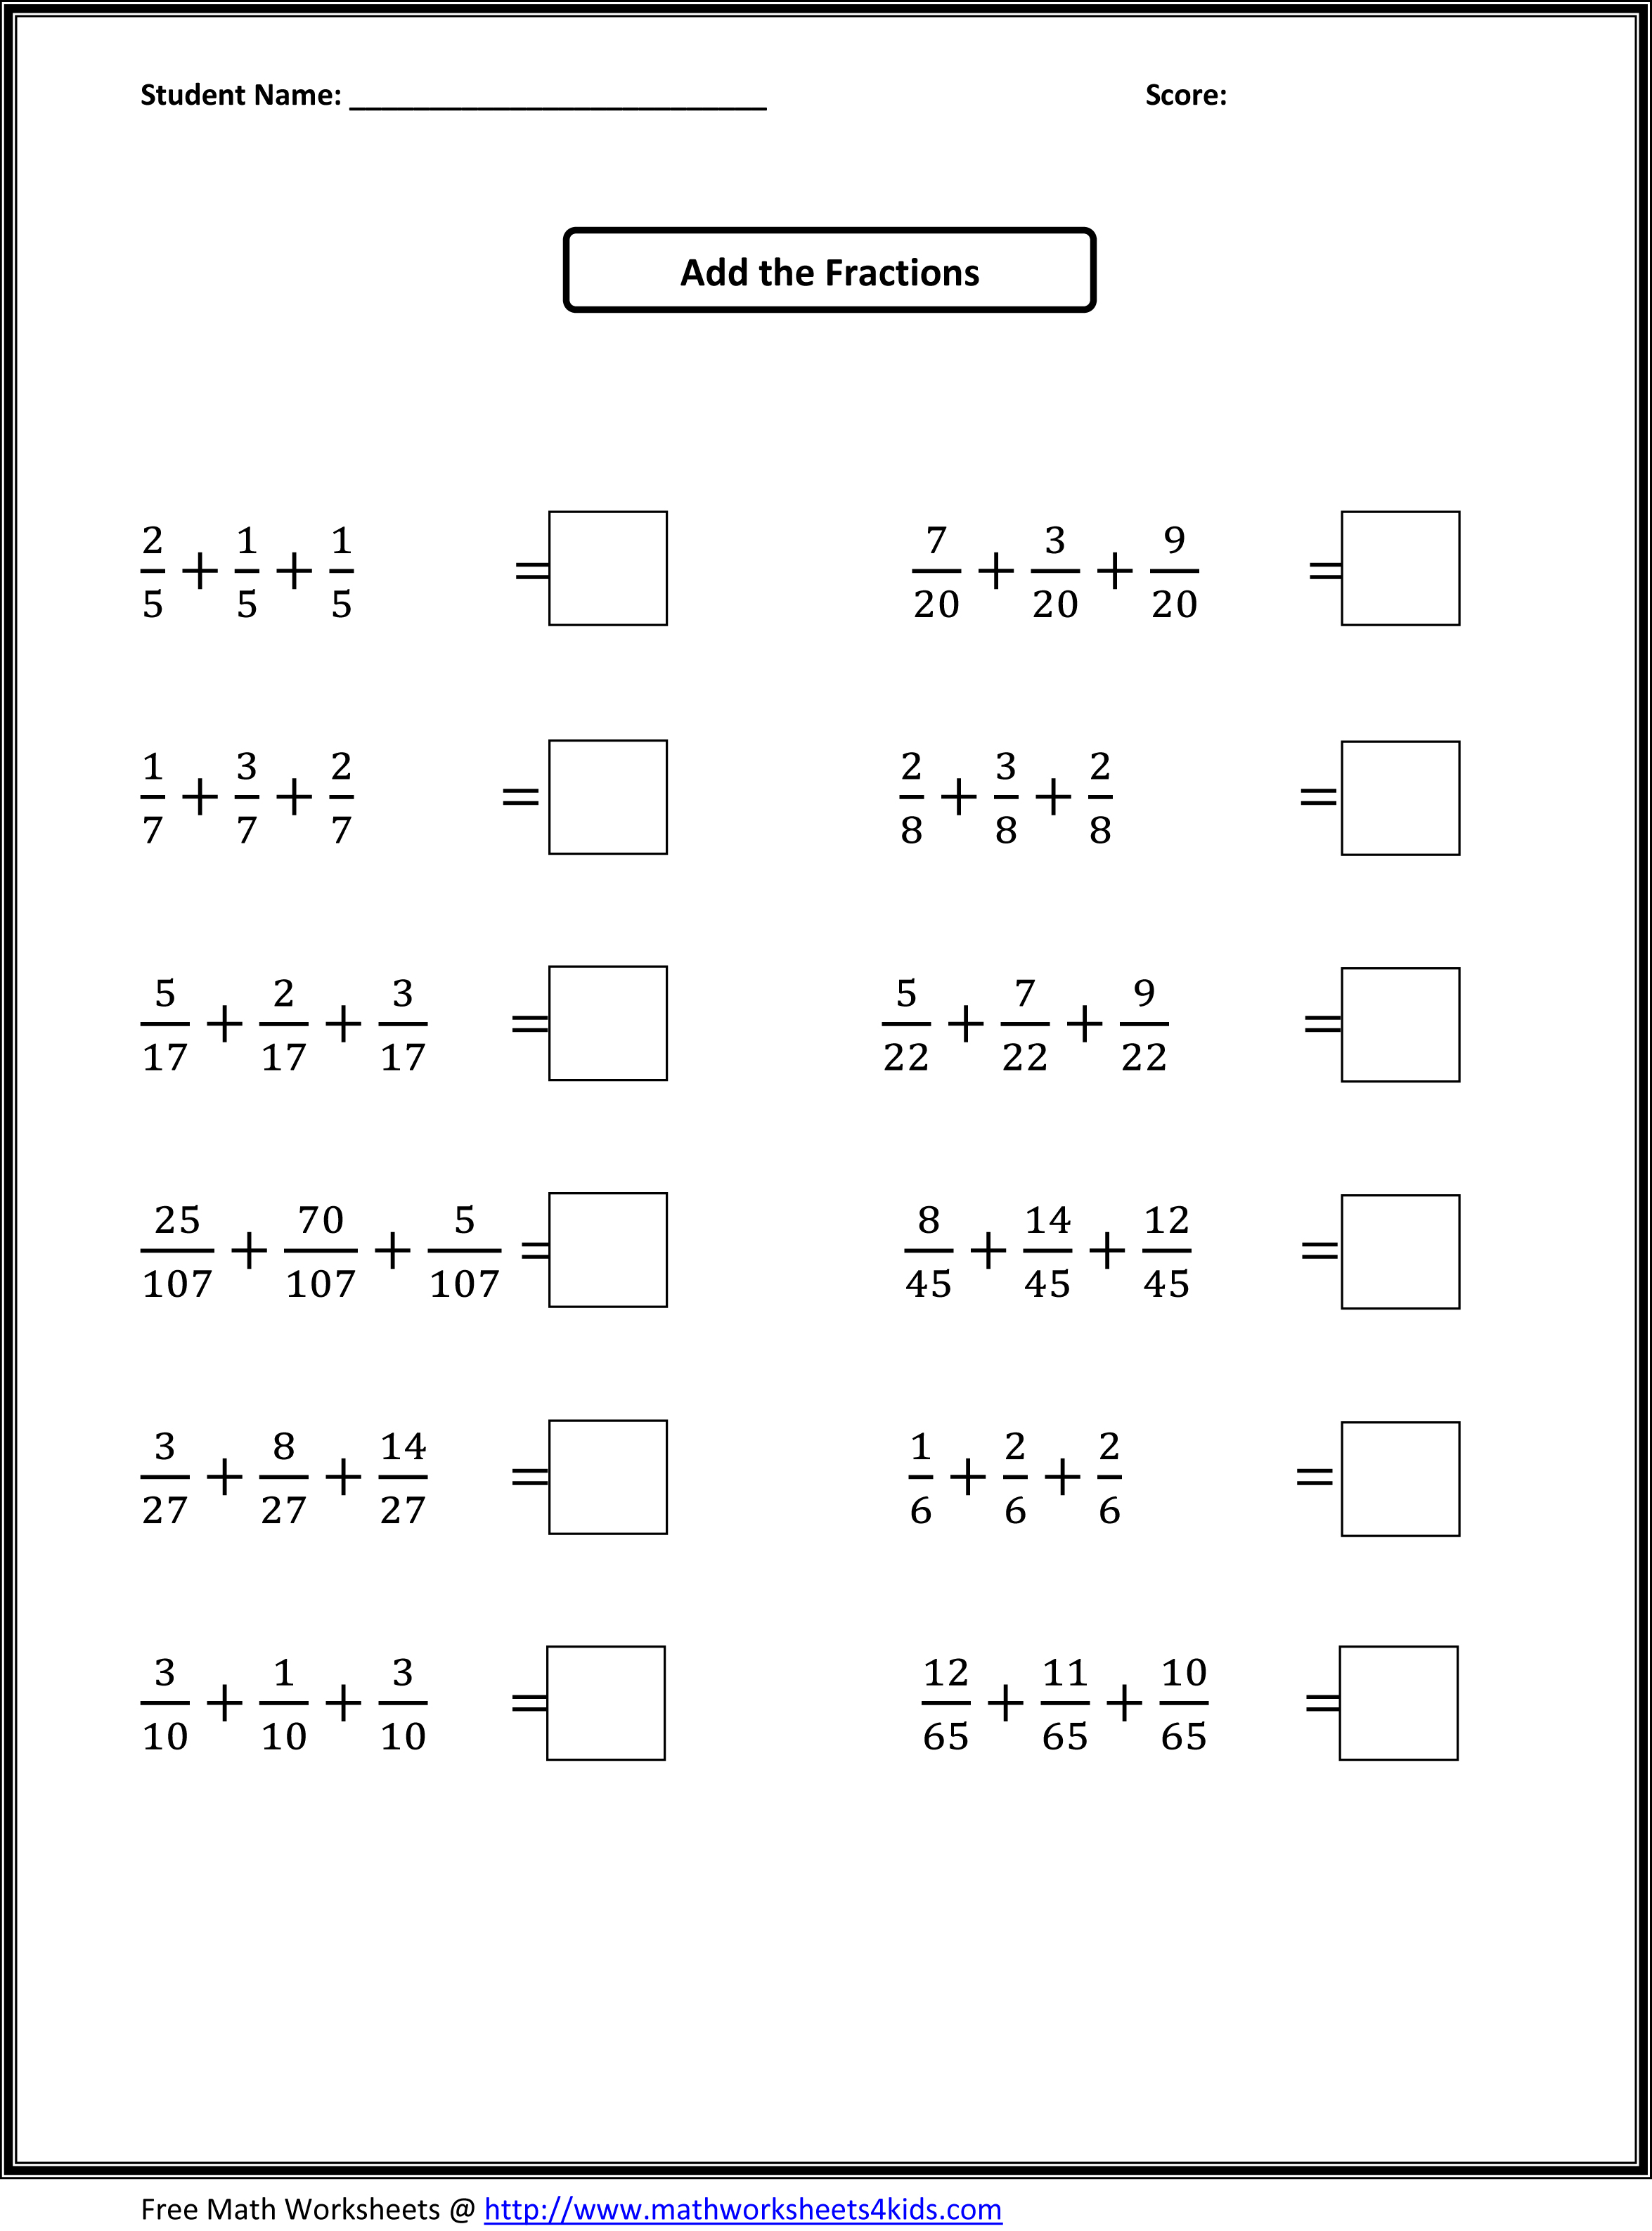 12 Best Images Of Super Test Worksheets